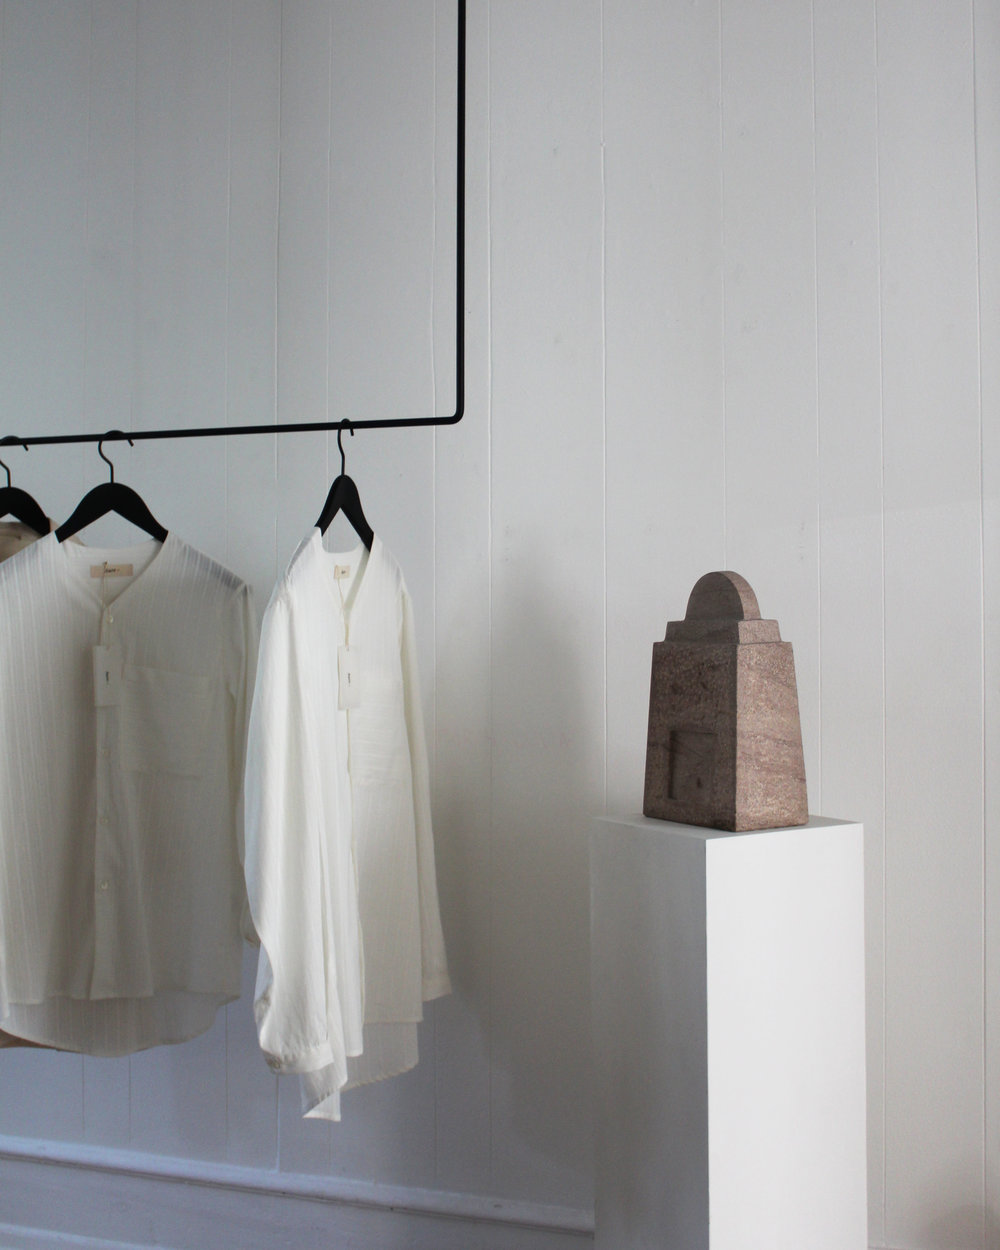 Constantin shirts and stone sculpture by Sys Vinding.